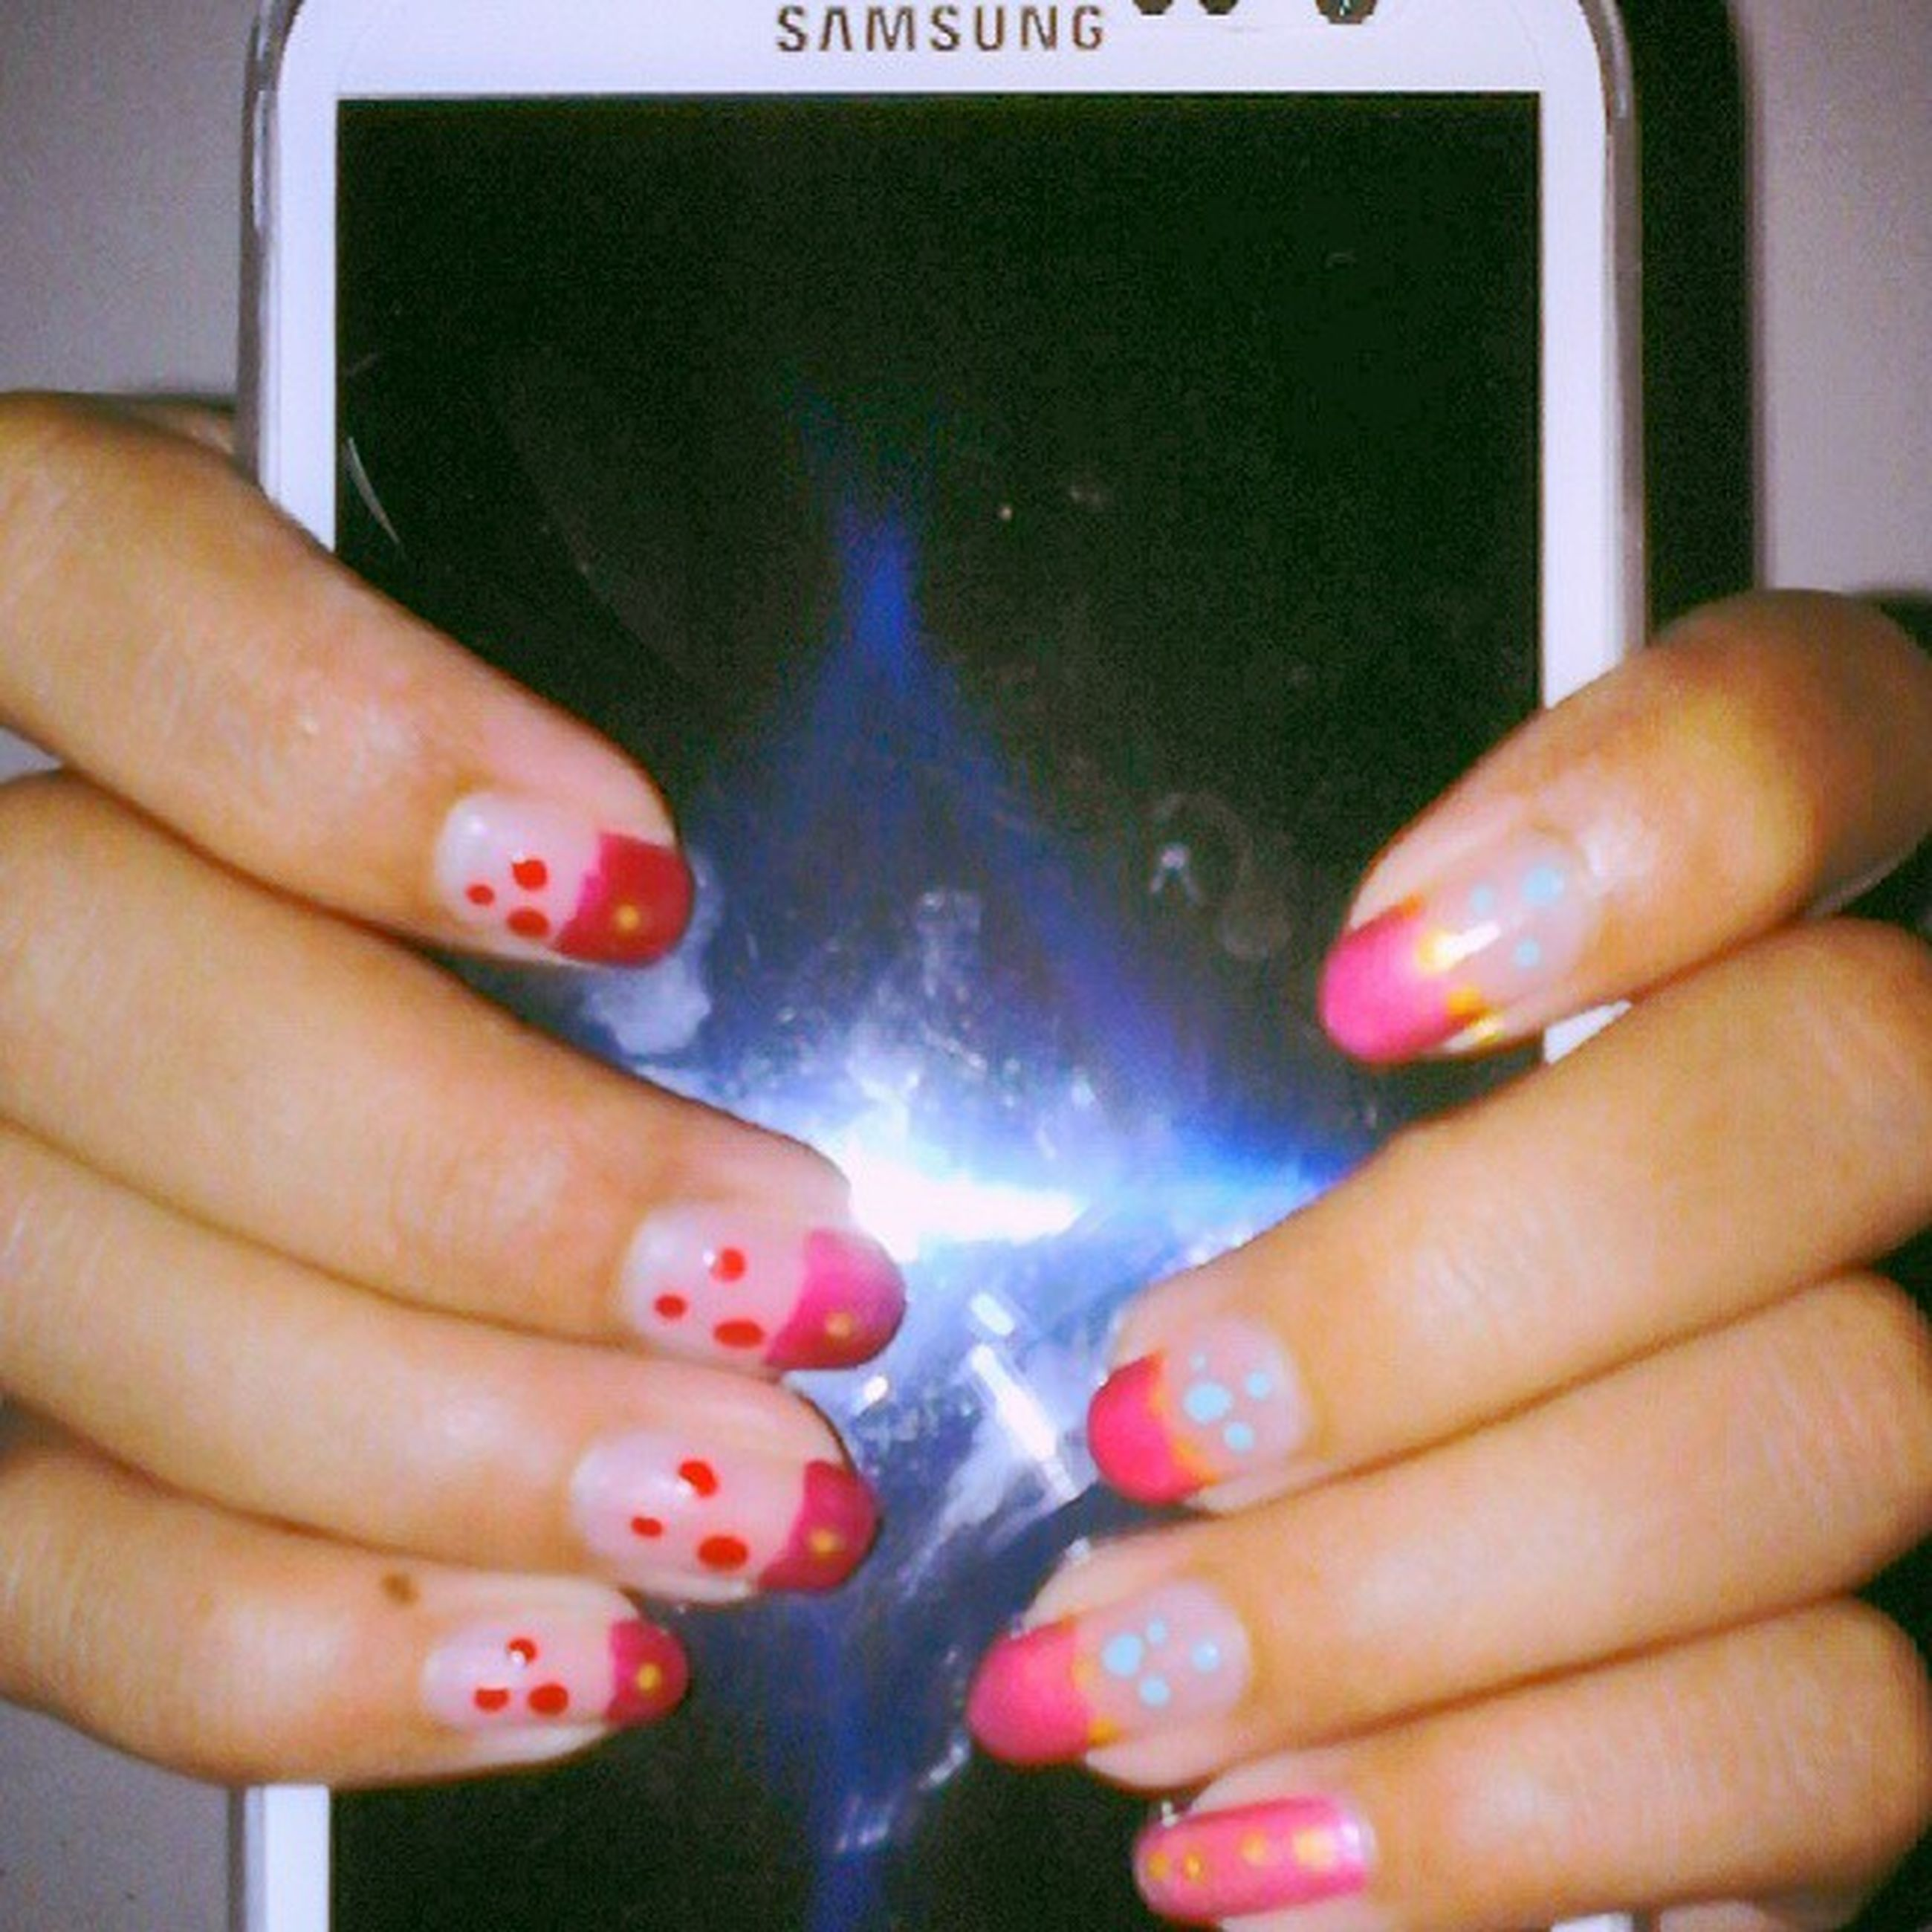 person, holding, part of, human finger, cropped, indoors, unrecognizable person, close-up, lifestyles, leisure activity, nail polish, personal perspective, communication, showing, water, men